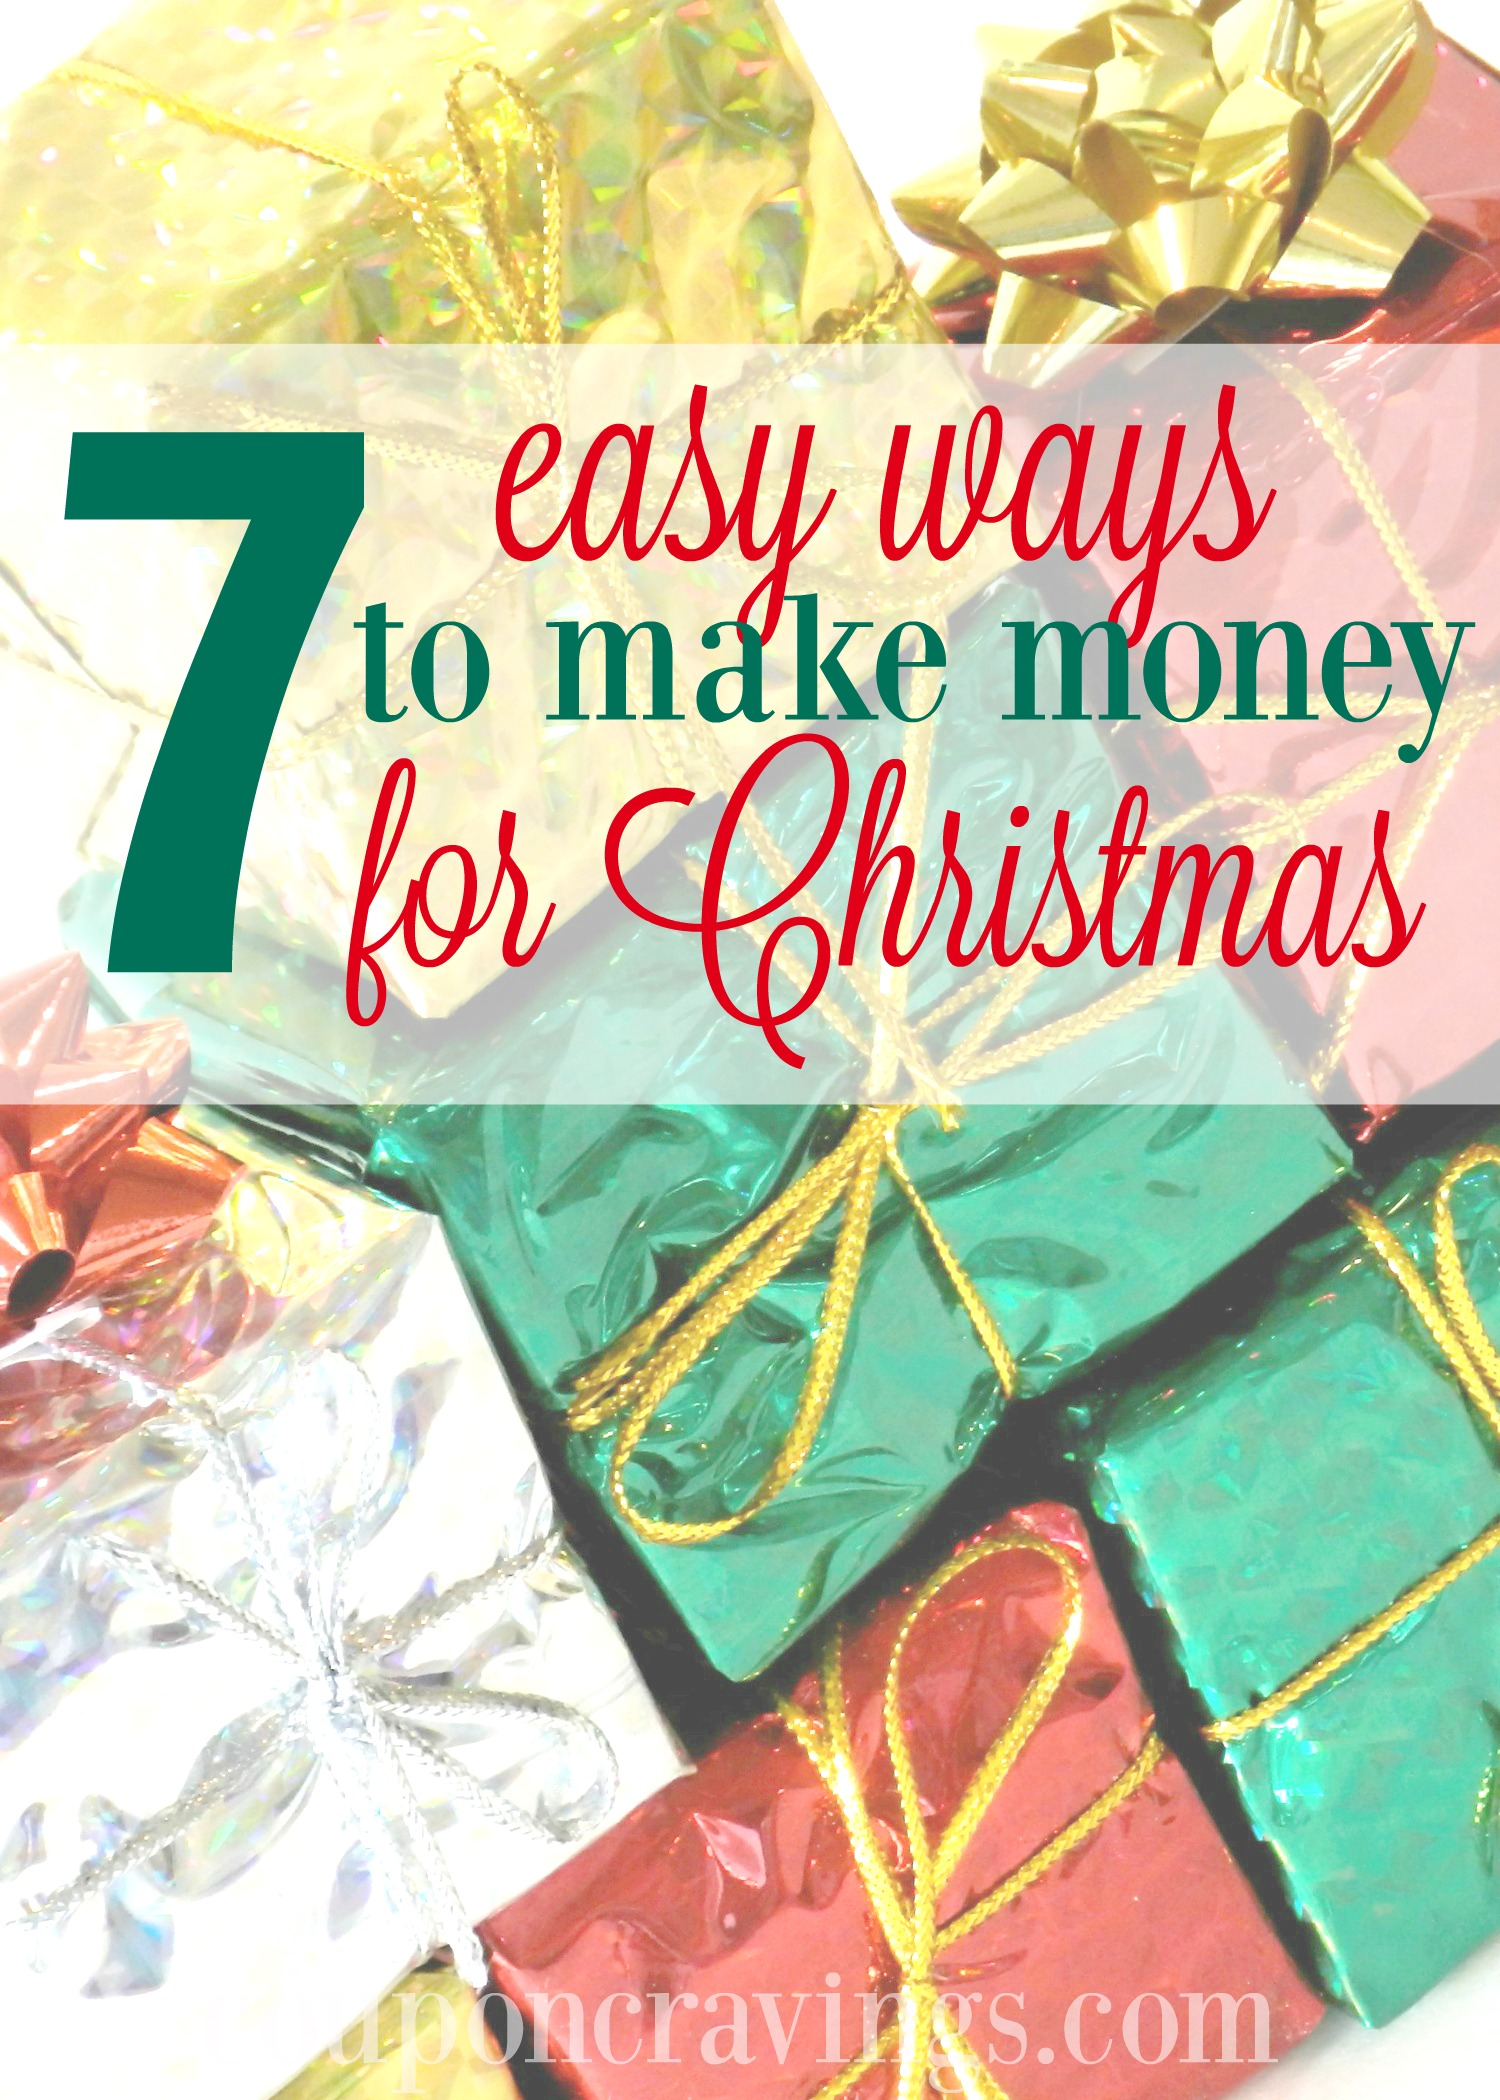 I want to make next years Christmas easier and found this article on how to make money for stay at home moms, tips and more - GREAT for putting money aside throughout the year! https://couponcravings.com